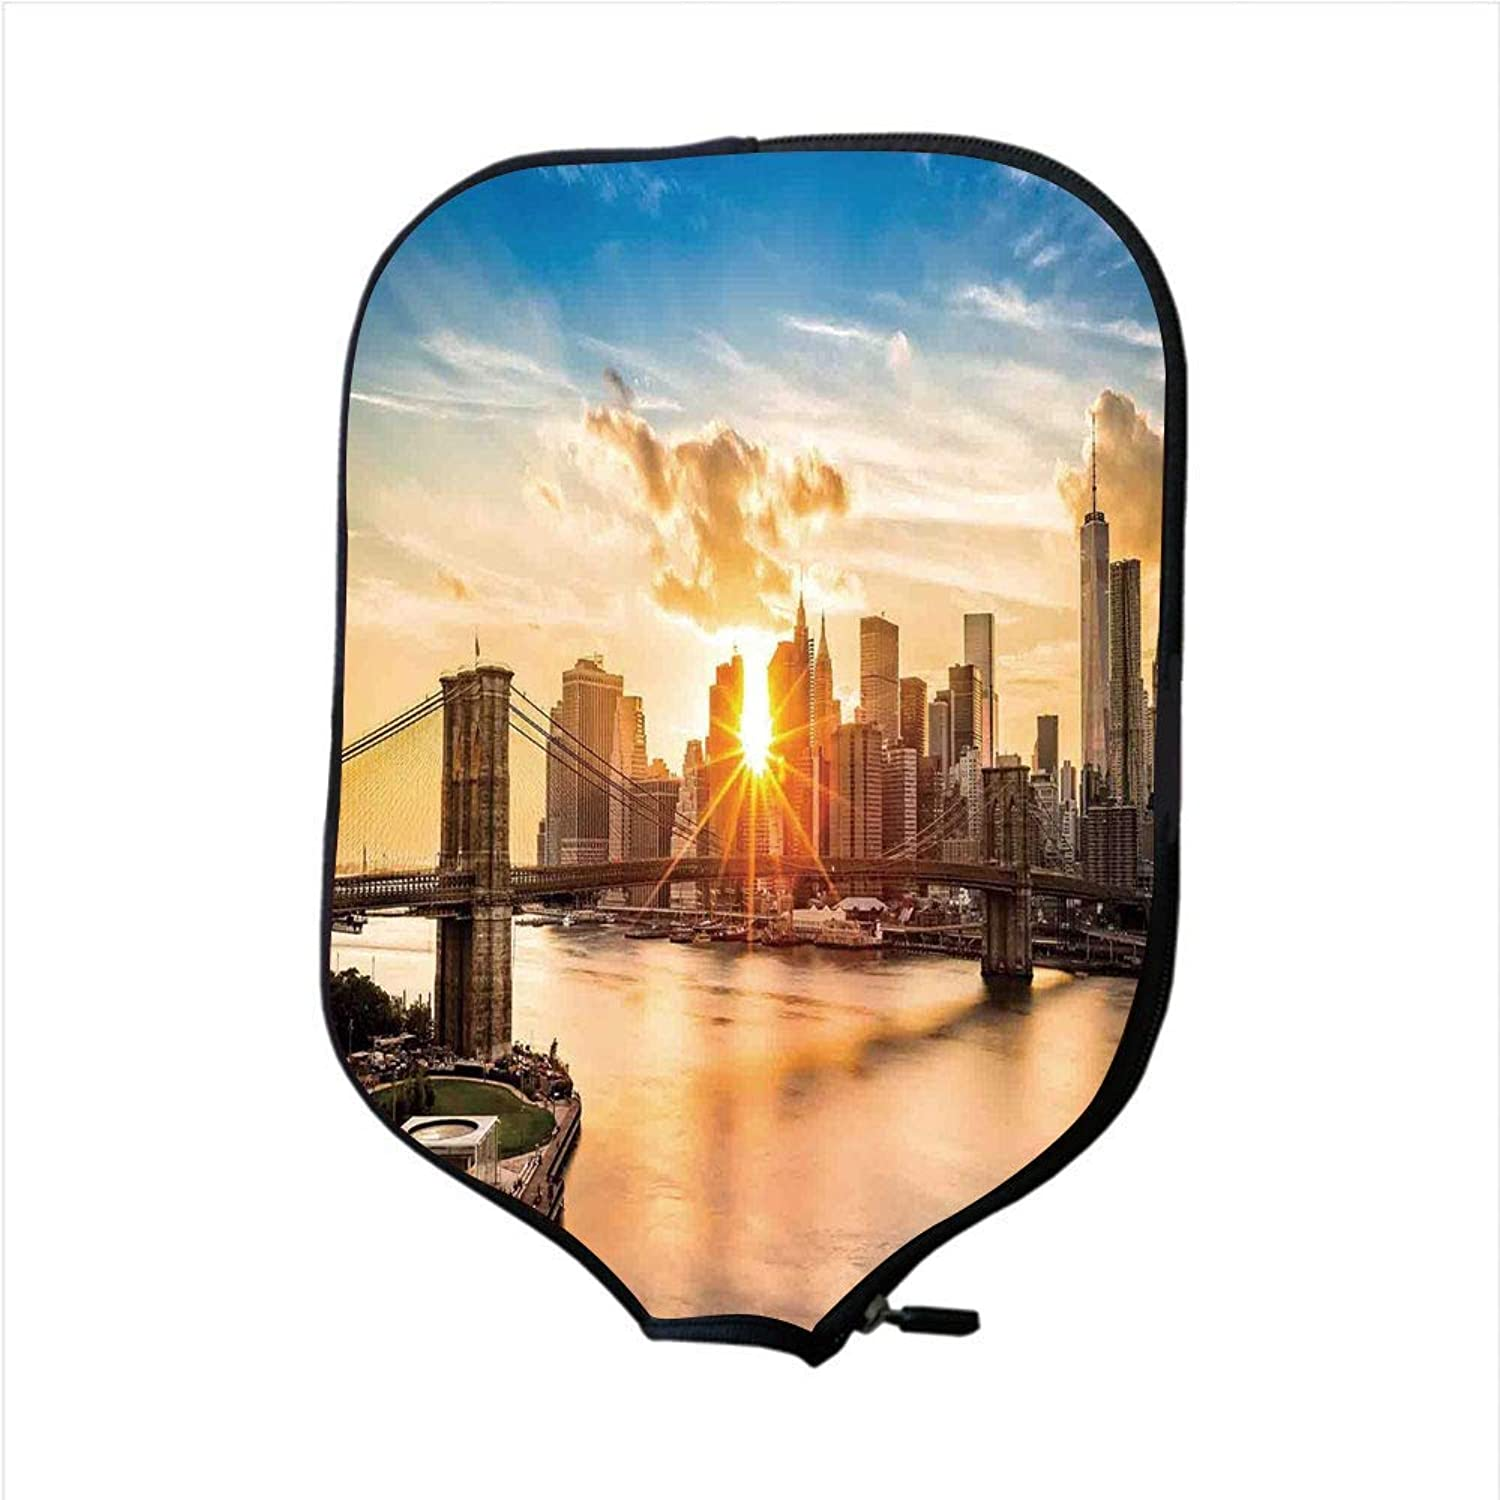 Fine Neoprene Pickleball Paddle Racket Cover Case,NYC Decor,Cityscape of Brooklyn Bridge and Lower Manhattan Hudson River Center of Fashion Art and Culture,Multi,Fit for Most Rackets